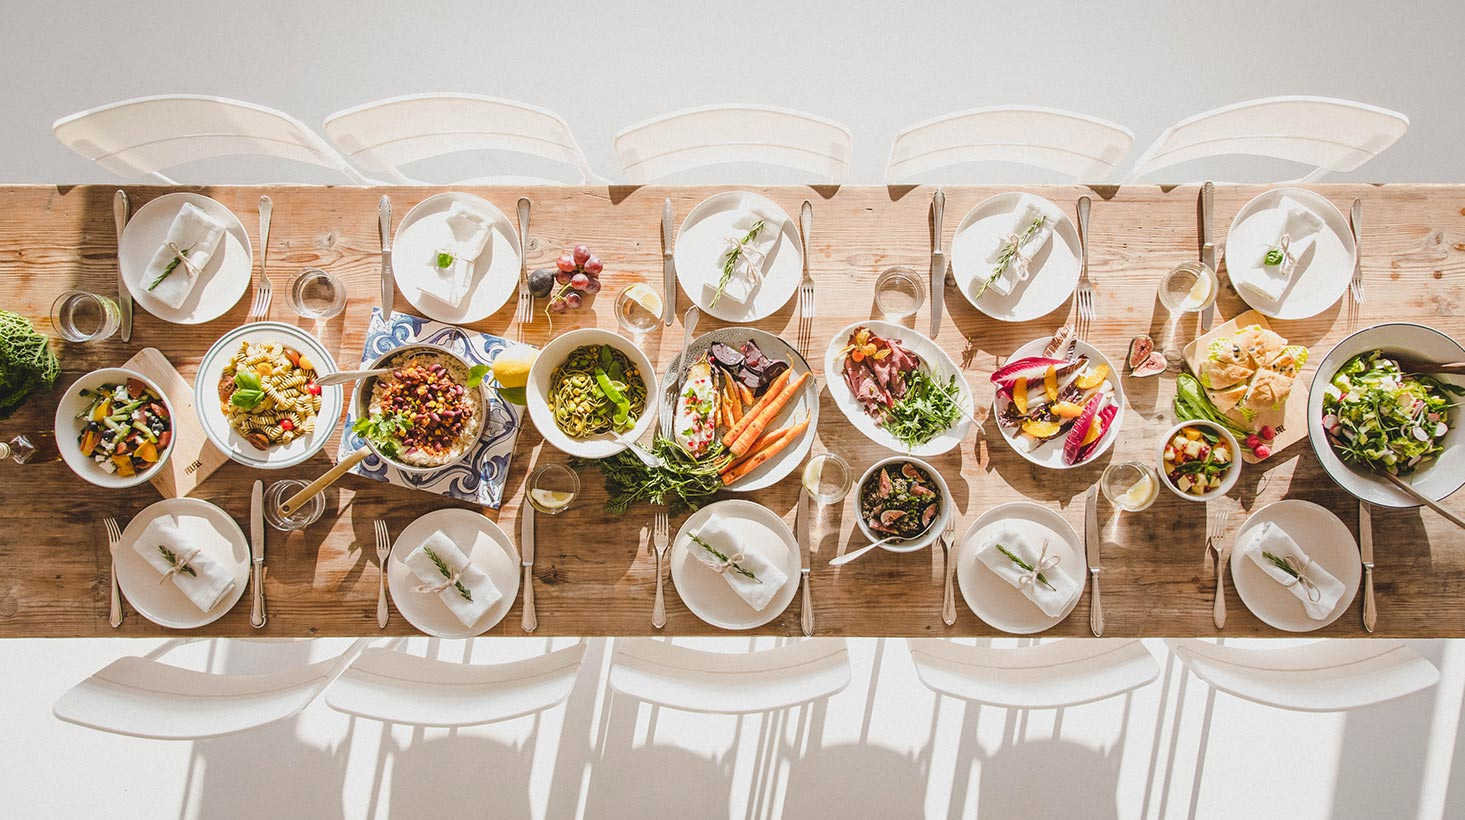 Symmetric Table with food in middle